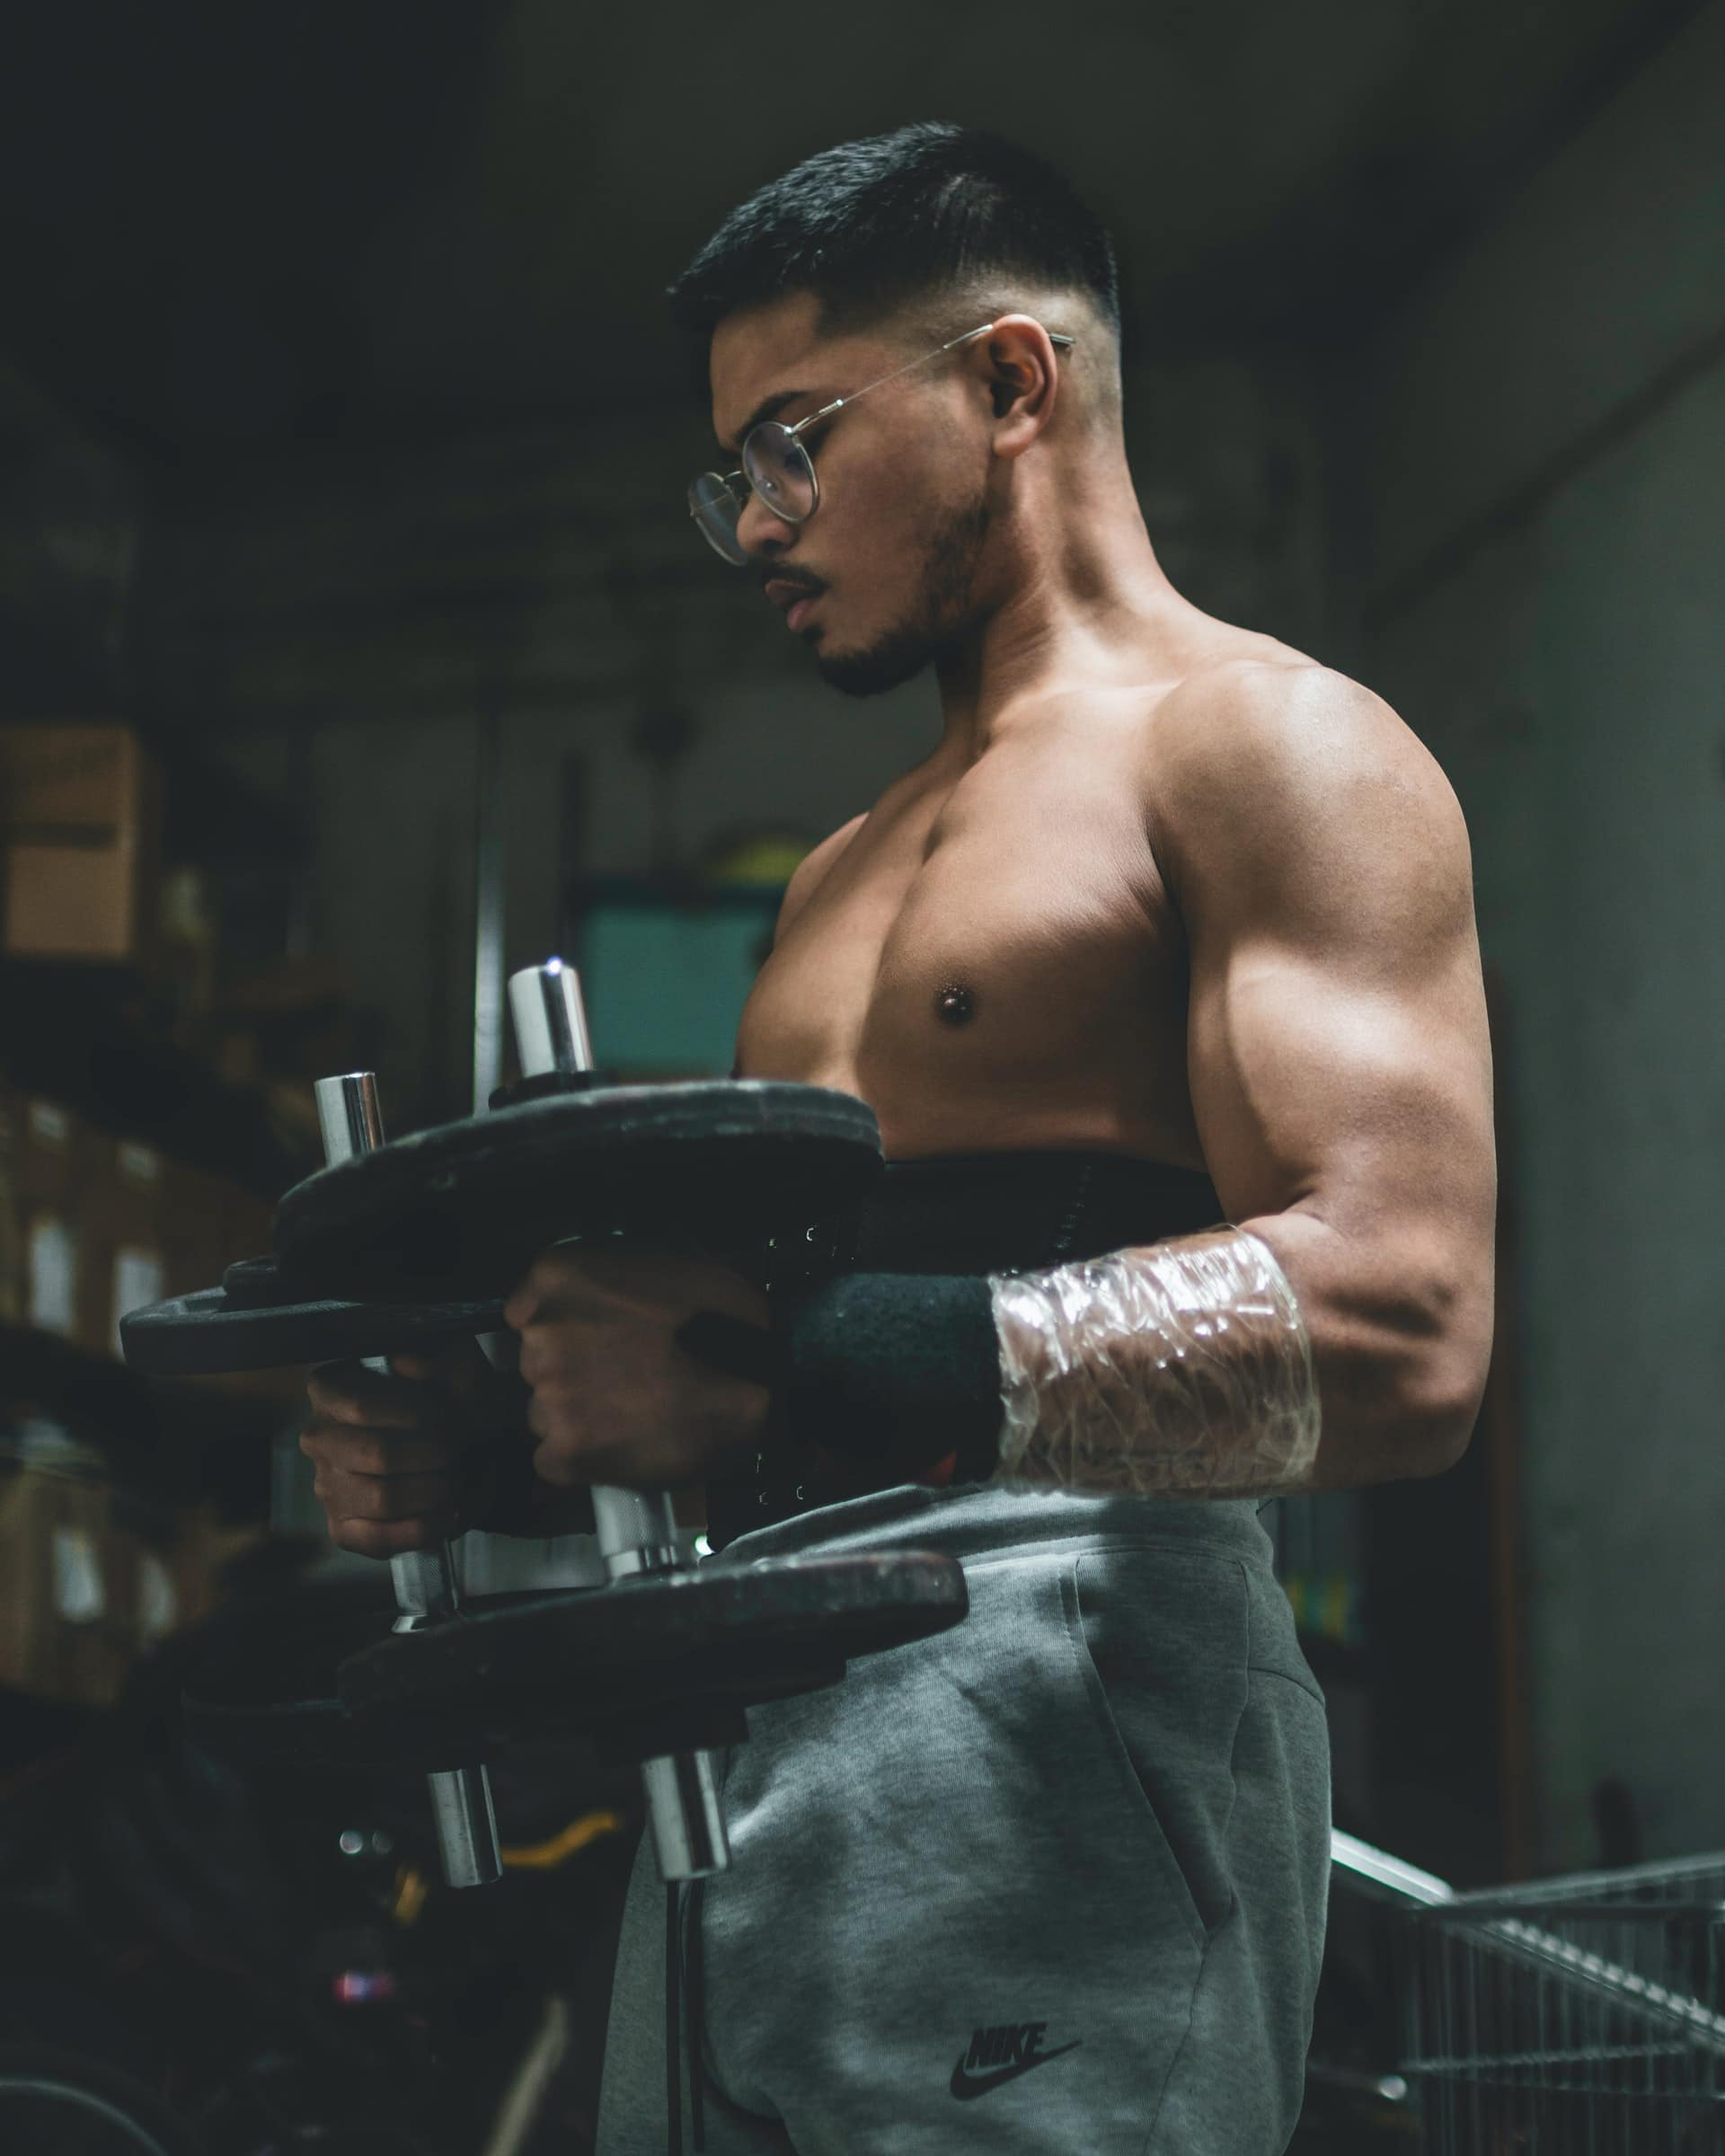 male athlete training in the gym